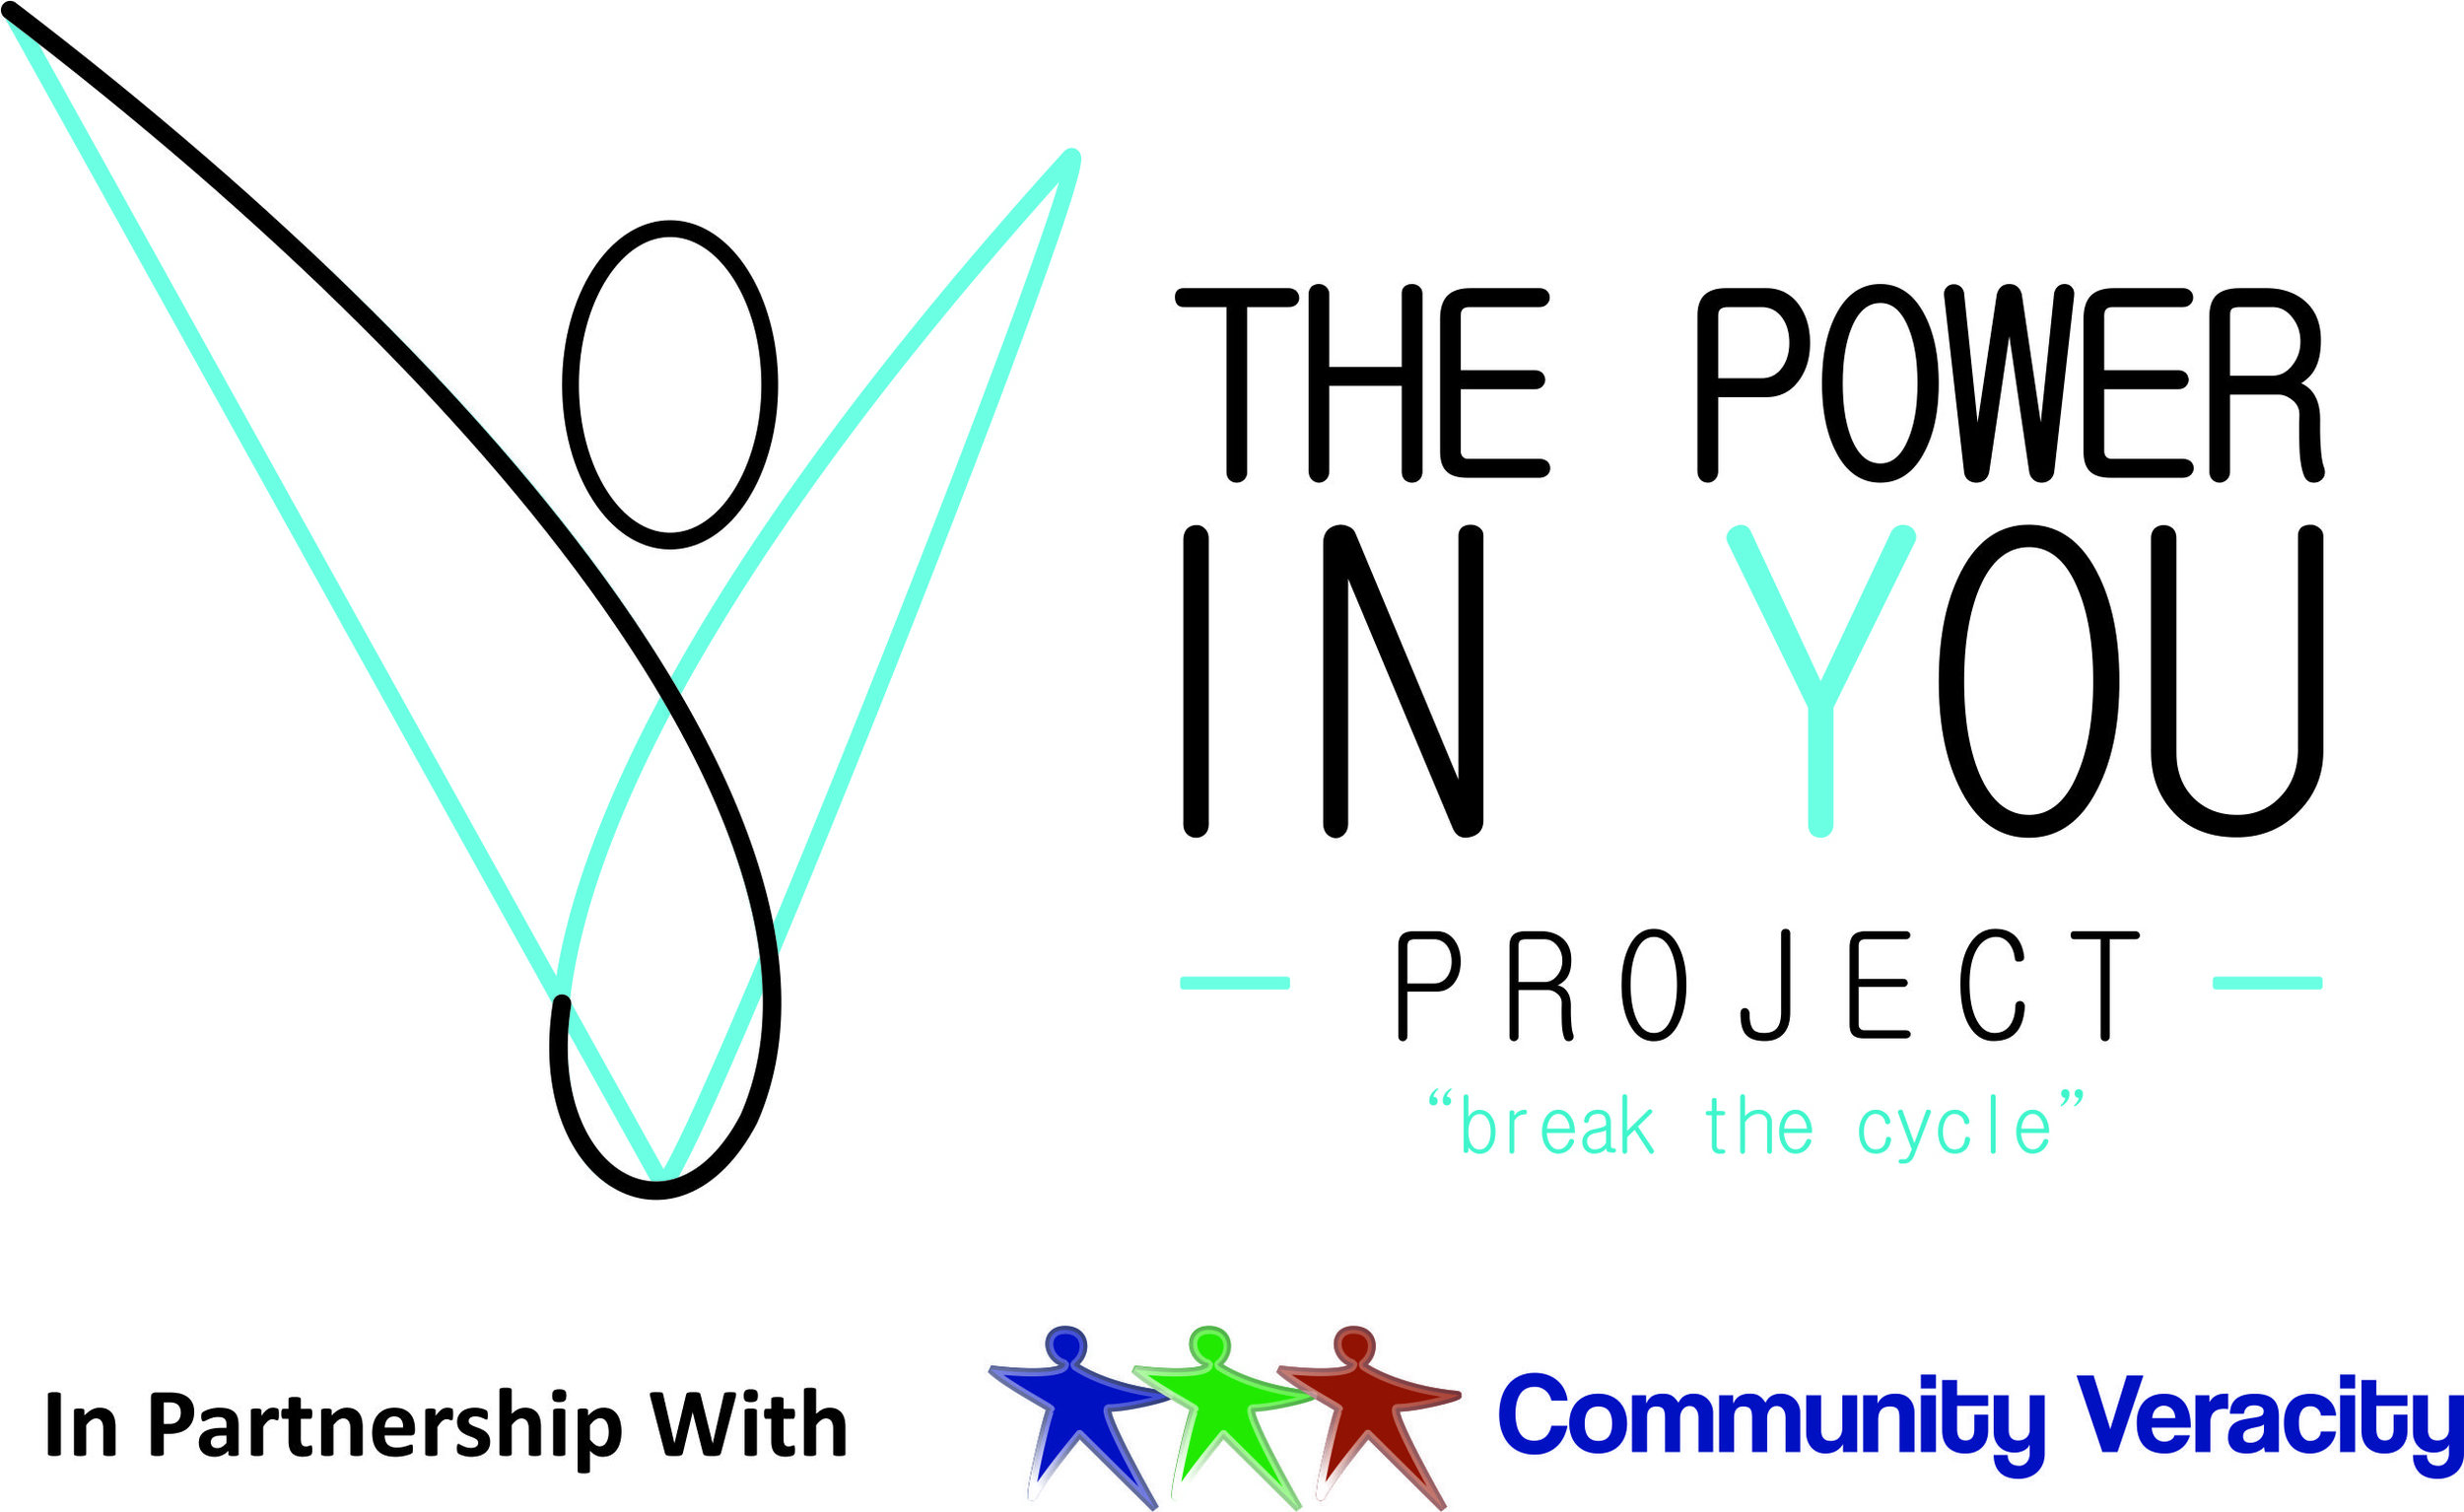 The Power In You Project exists to support and empower individuals batting addiction in the Geelong community to achieve lasting change in their lives. -